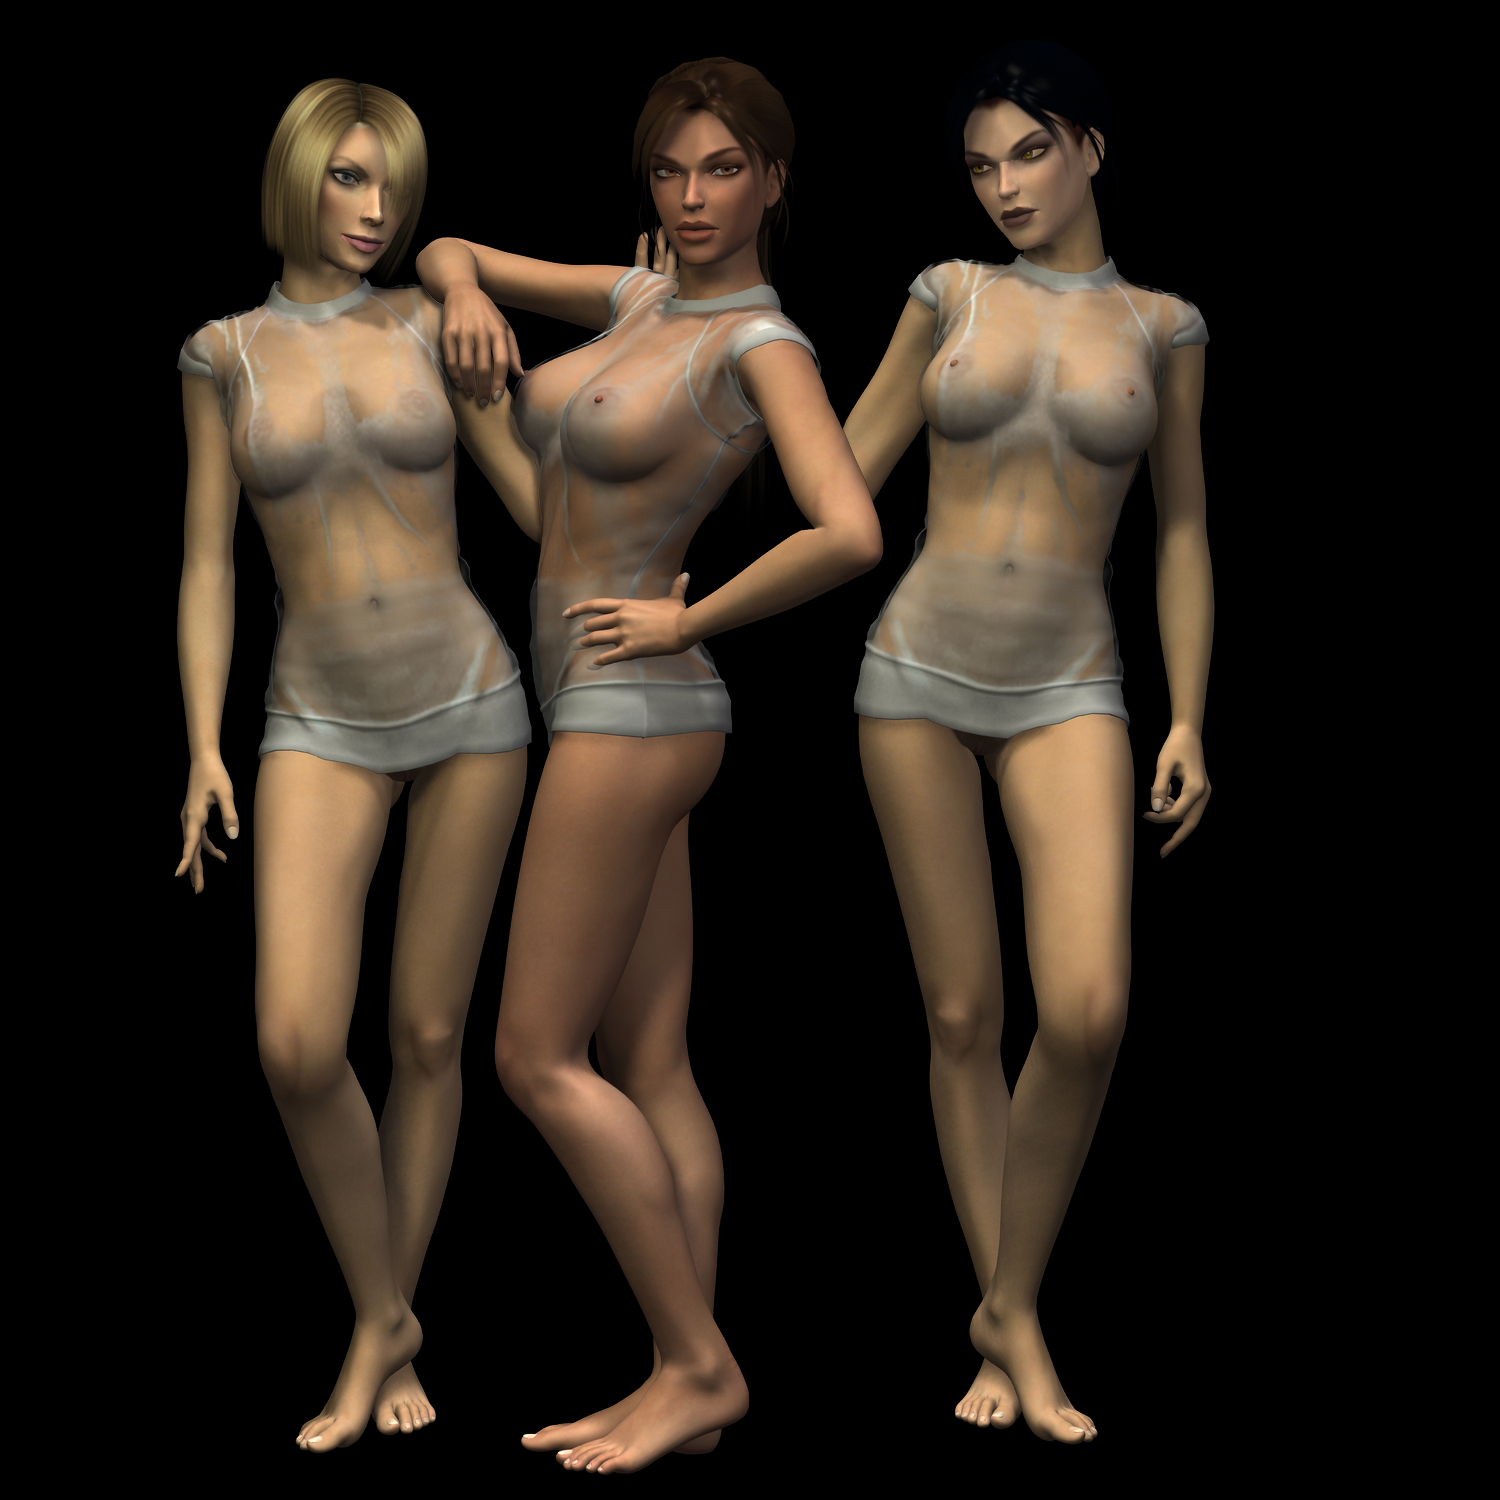 Tombraider underworld nude mod adult images